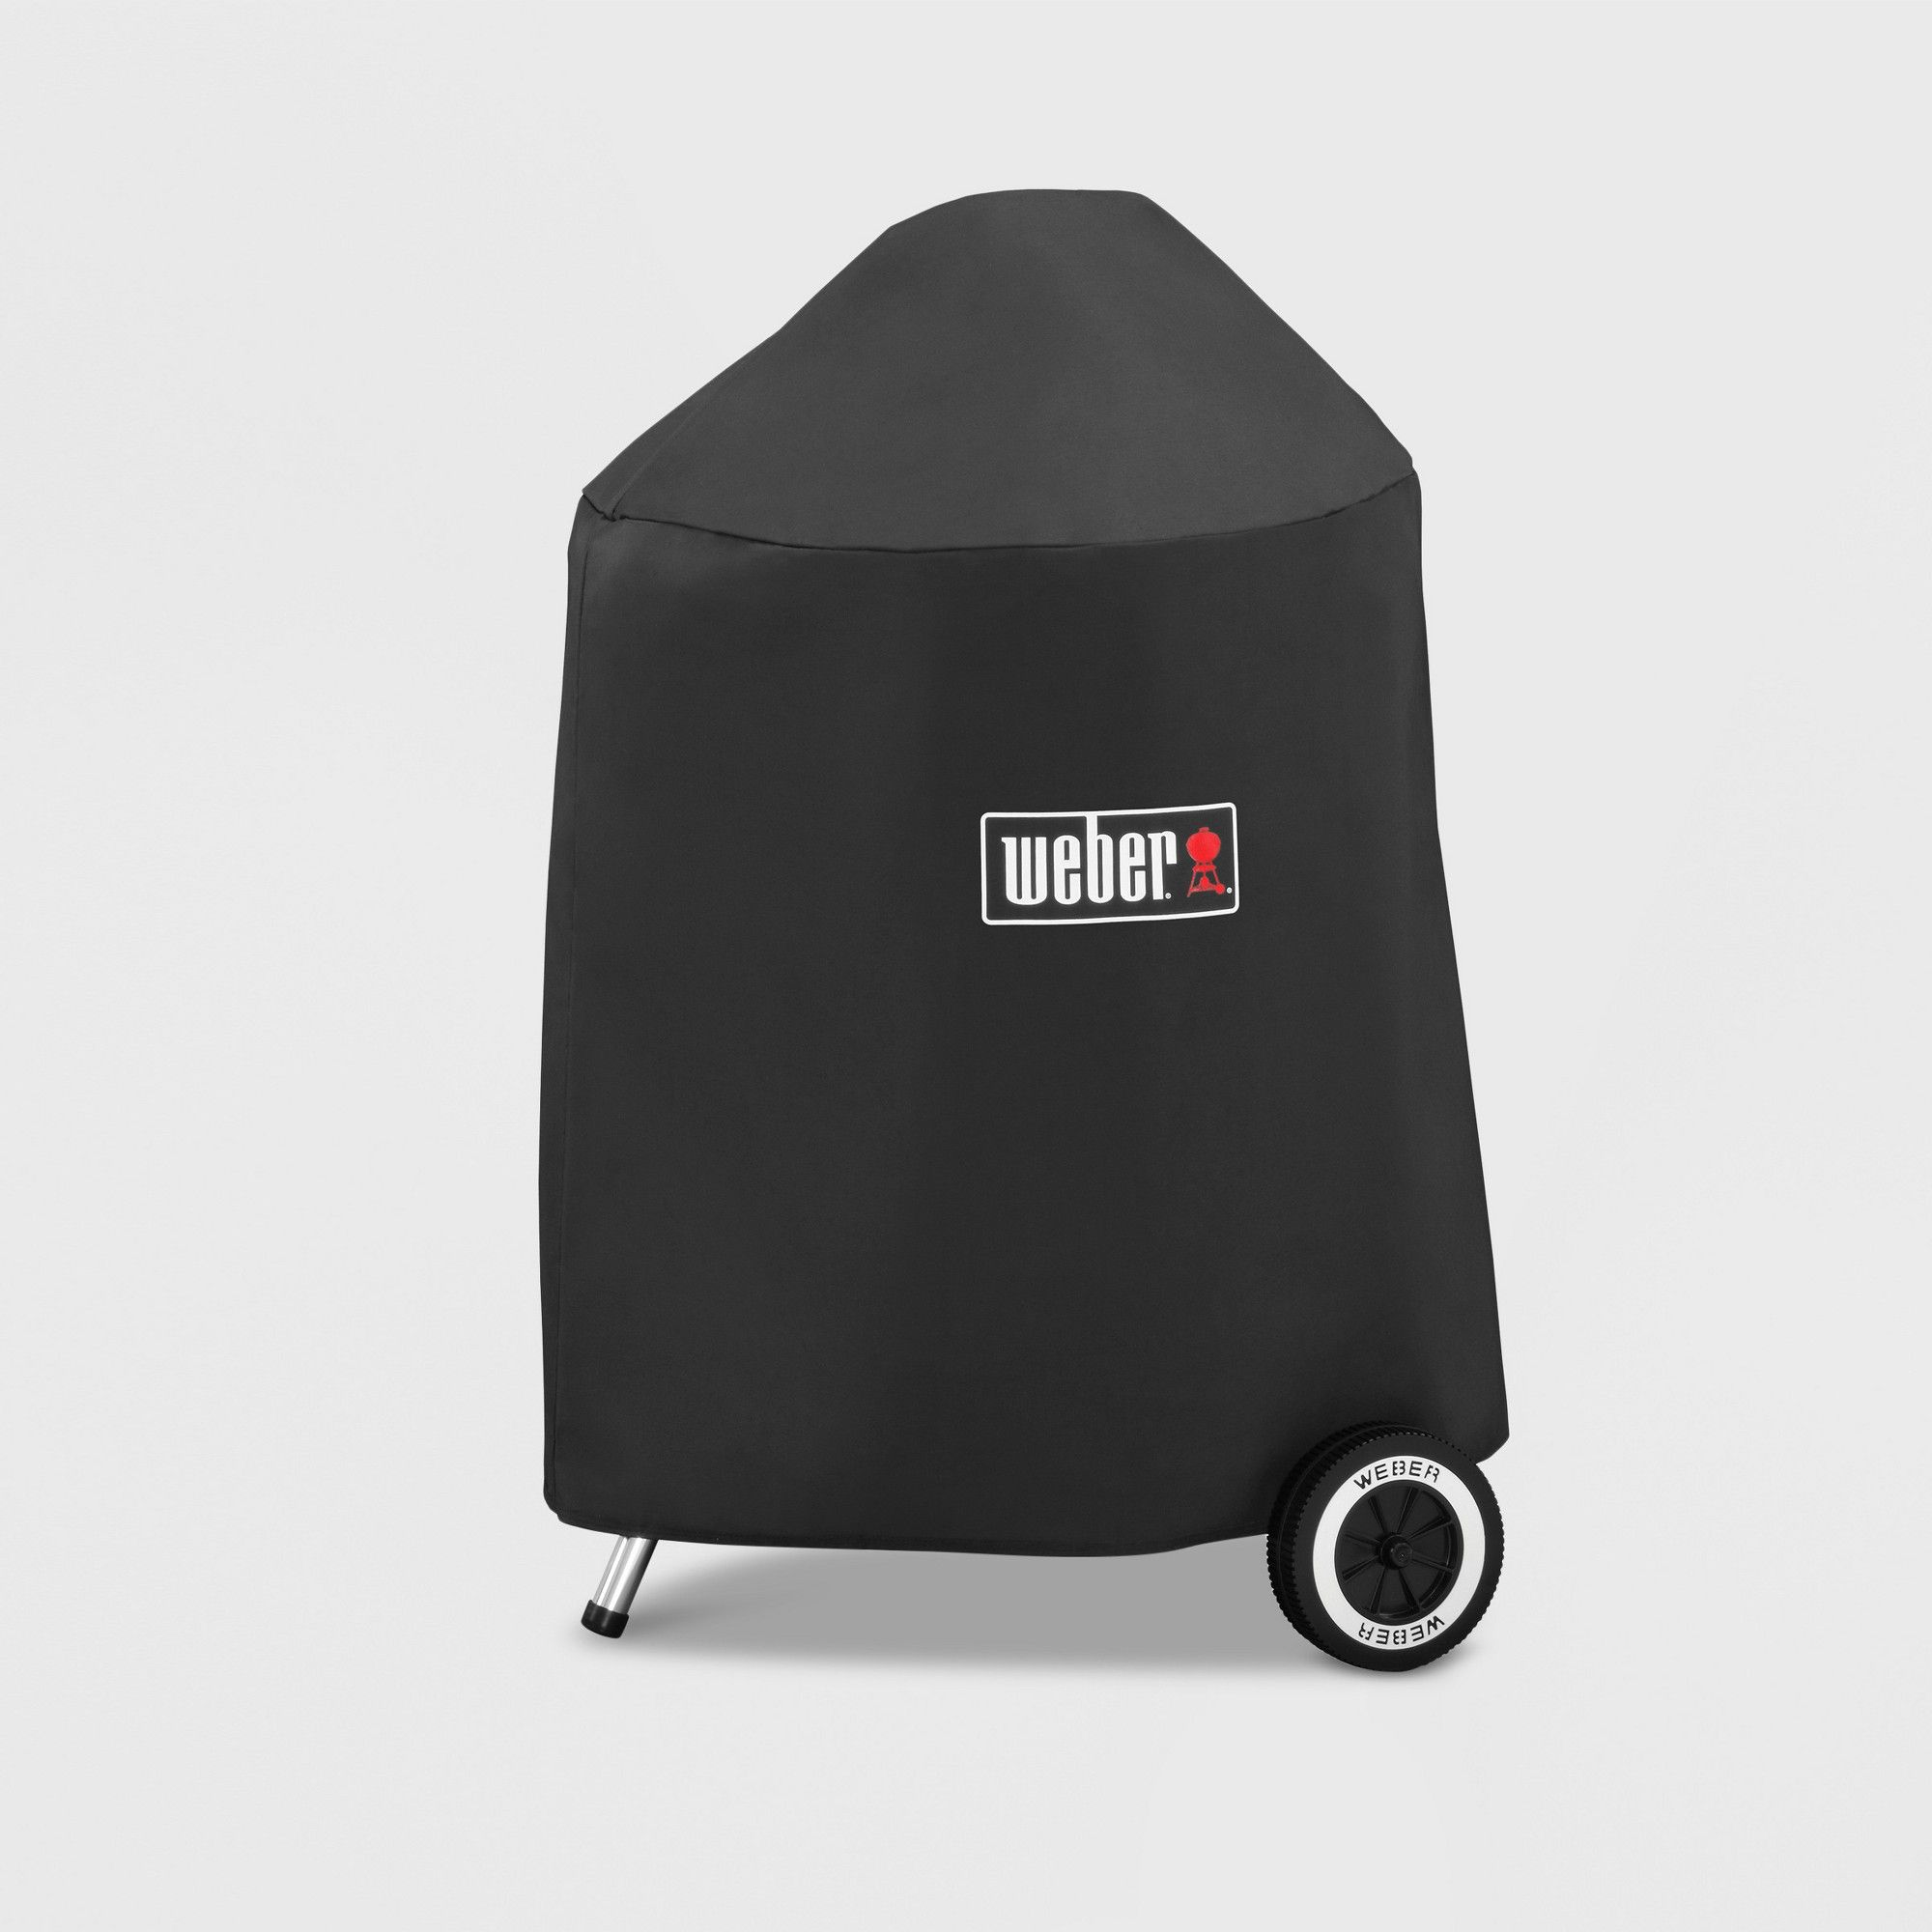 Weber 18 Inch Charcoal Grill Cover With Storage Bag Grill Cover Kettle Grills Charcoal Grill